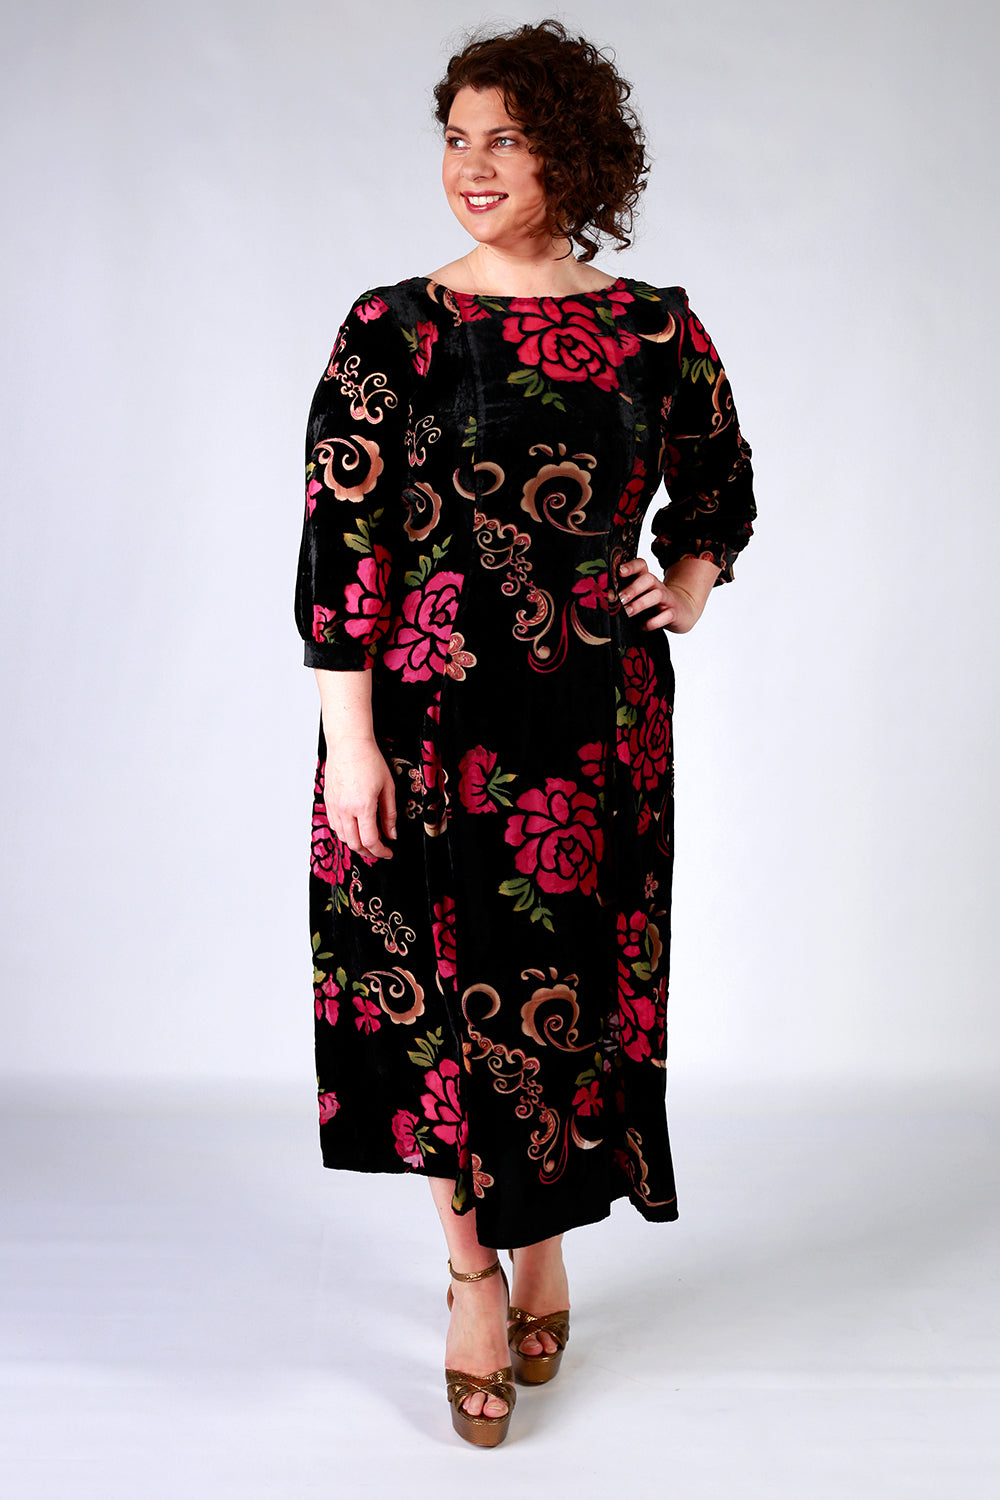 Coming Up Roses Dress | Gypsy Fare Collection | Annah Stretton AW20 | Annah Stretton Dress | Velvet Dress | Midi Length Dresses NZ | Designer Fashion NZ | Floral Dresses NZ |